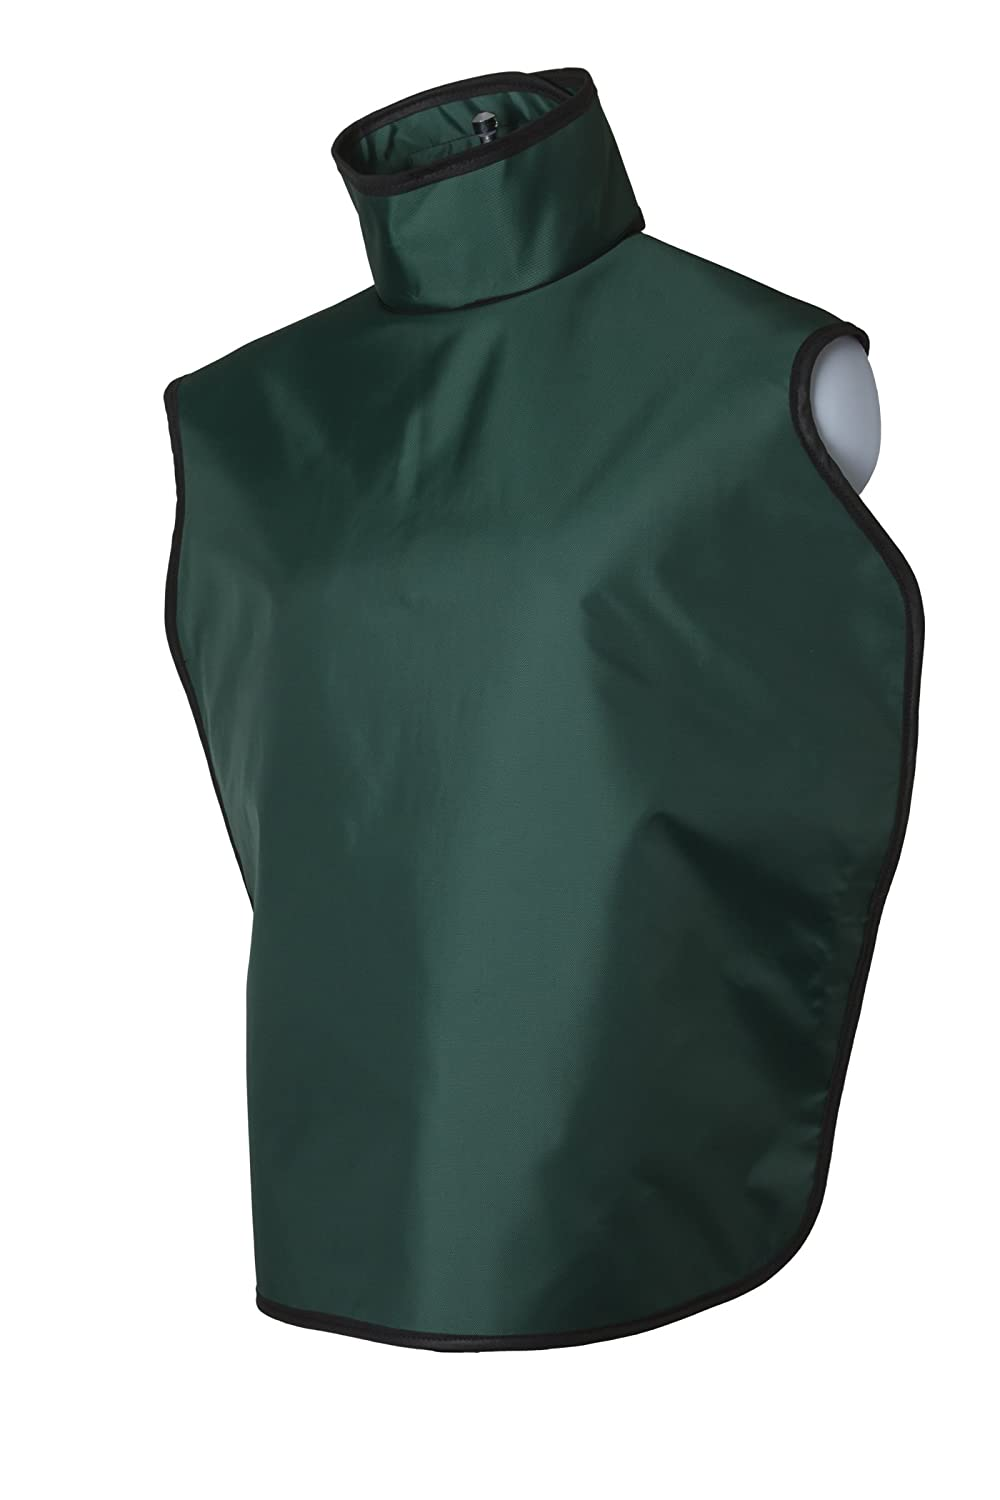 Dental Radiation Lead Apron with Collar and Hanging Loops - Lightweight - Adult лонгслив printio я sega